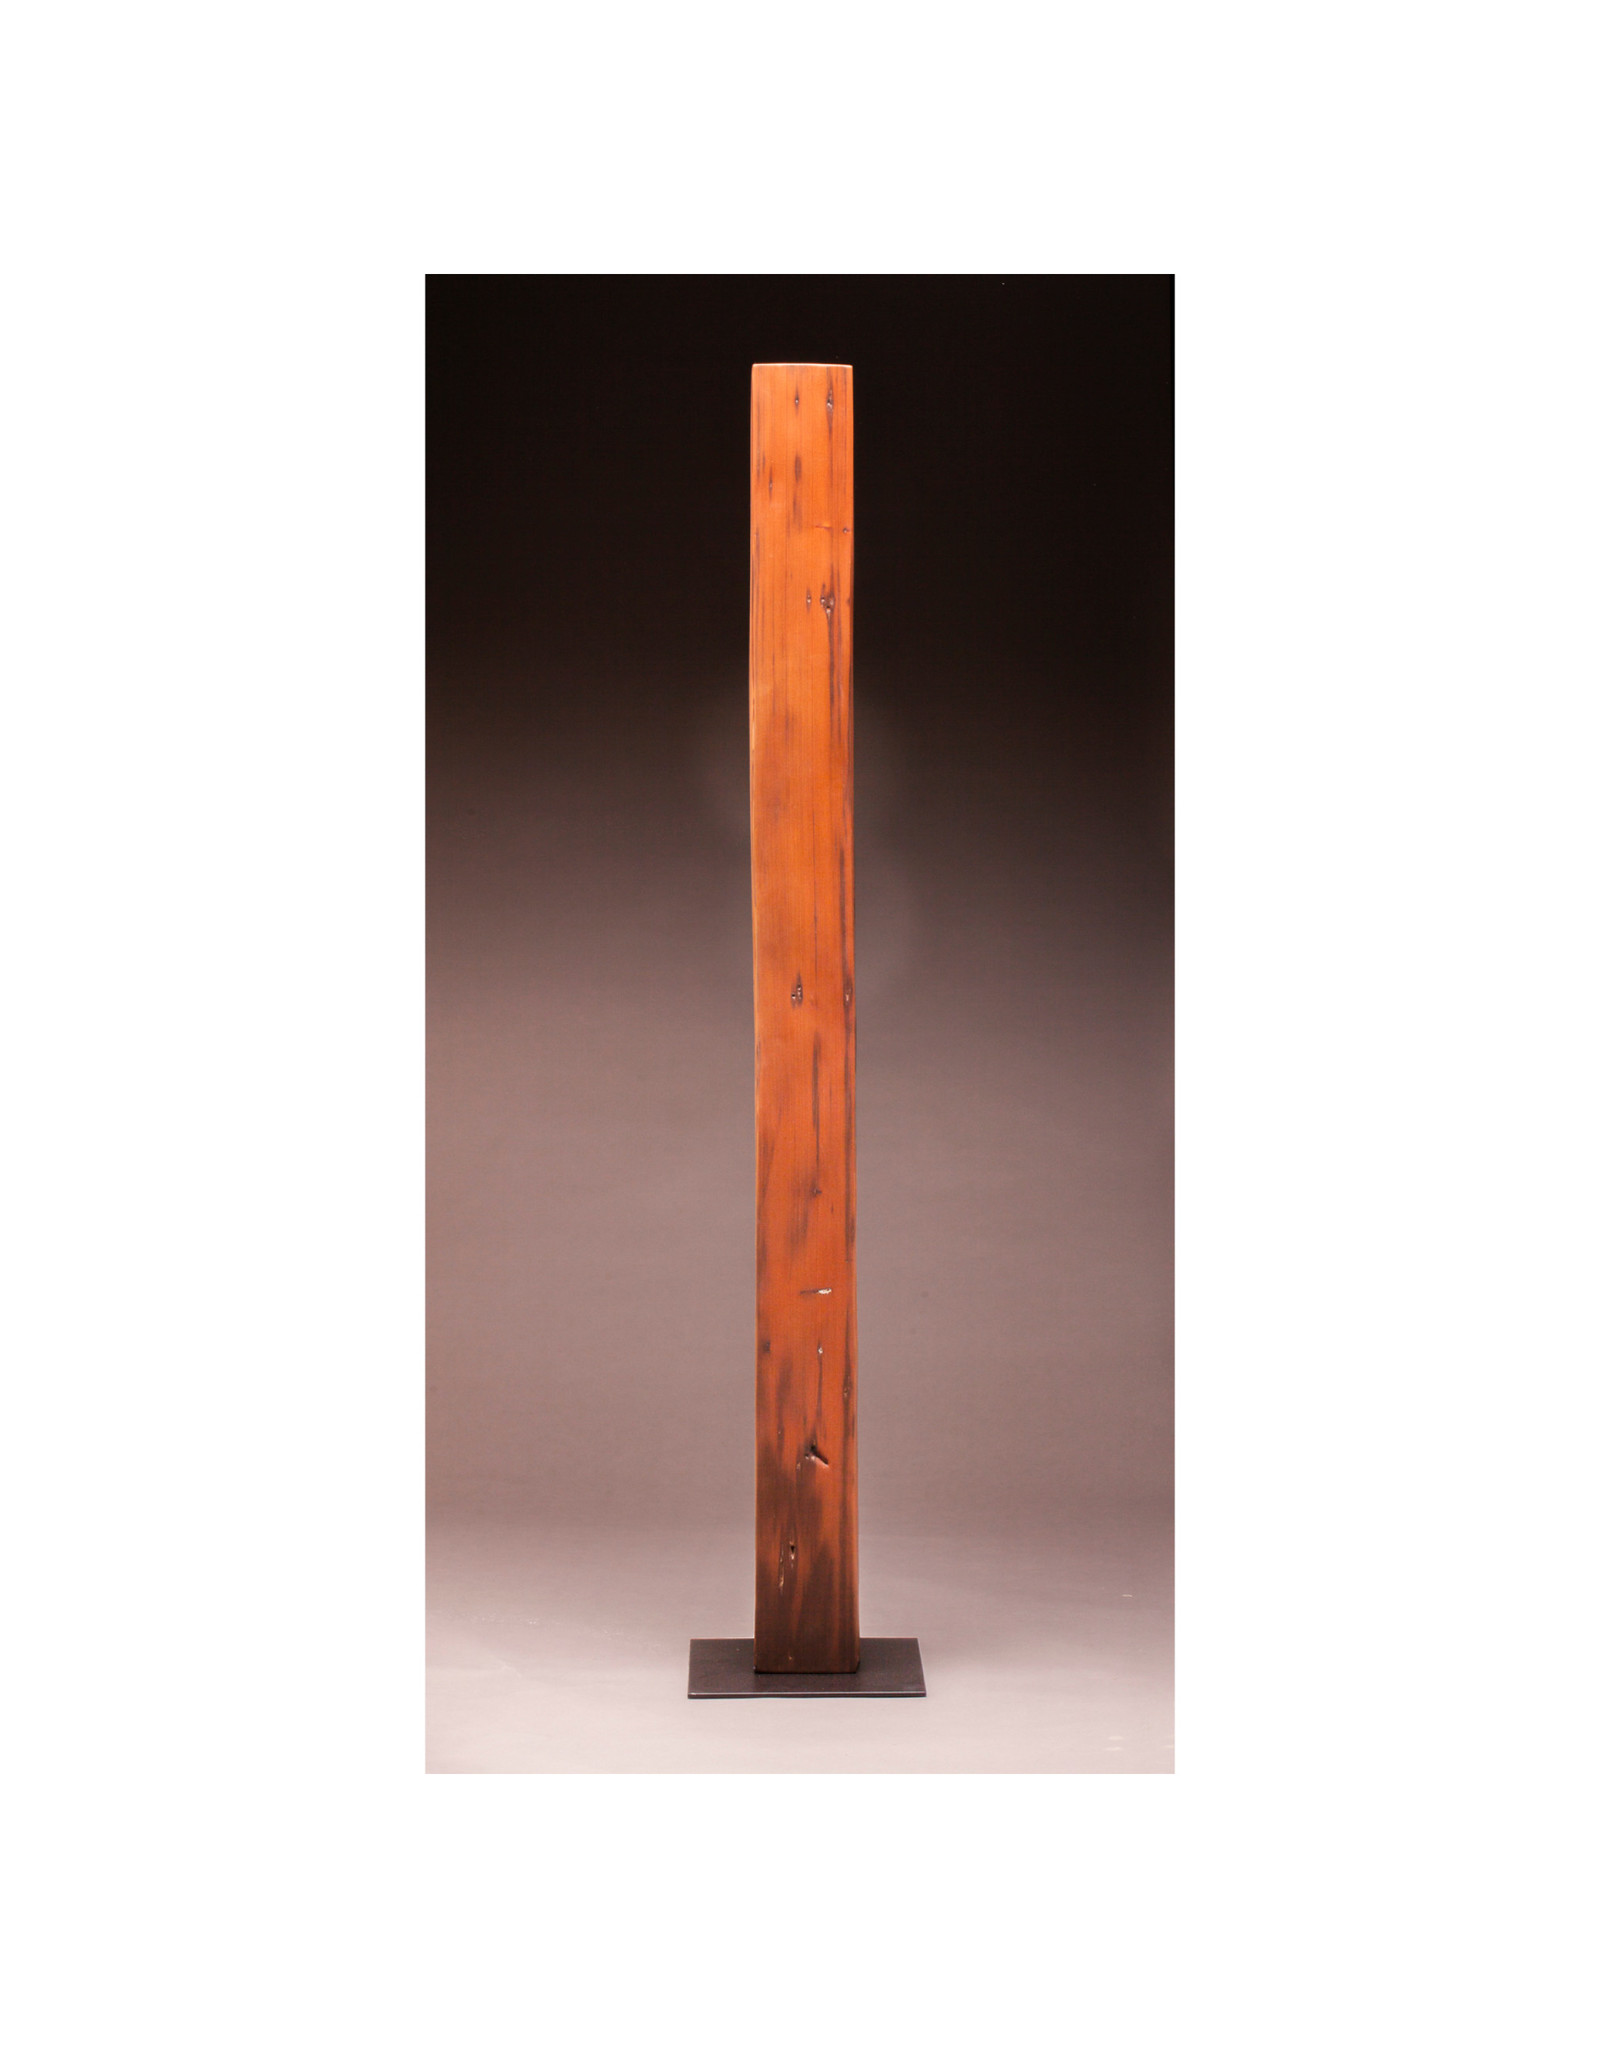 Ceremonial Redwood - No. 1